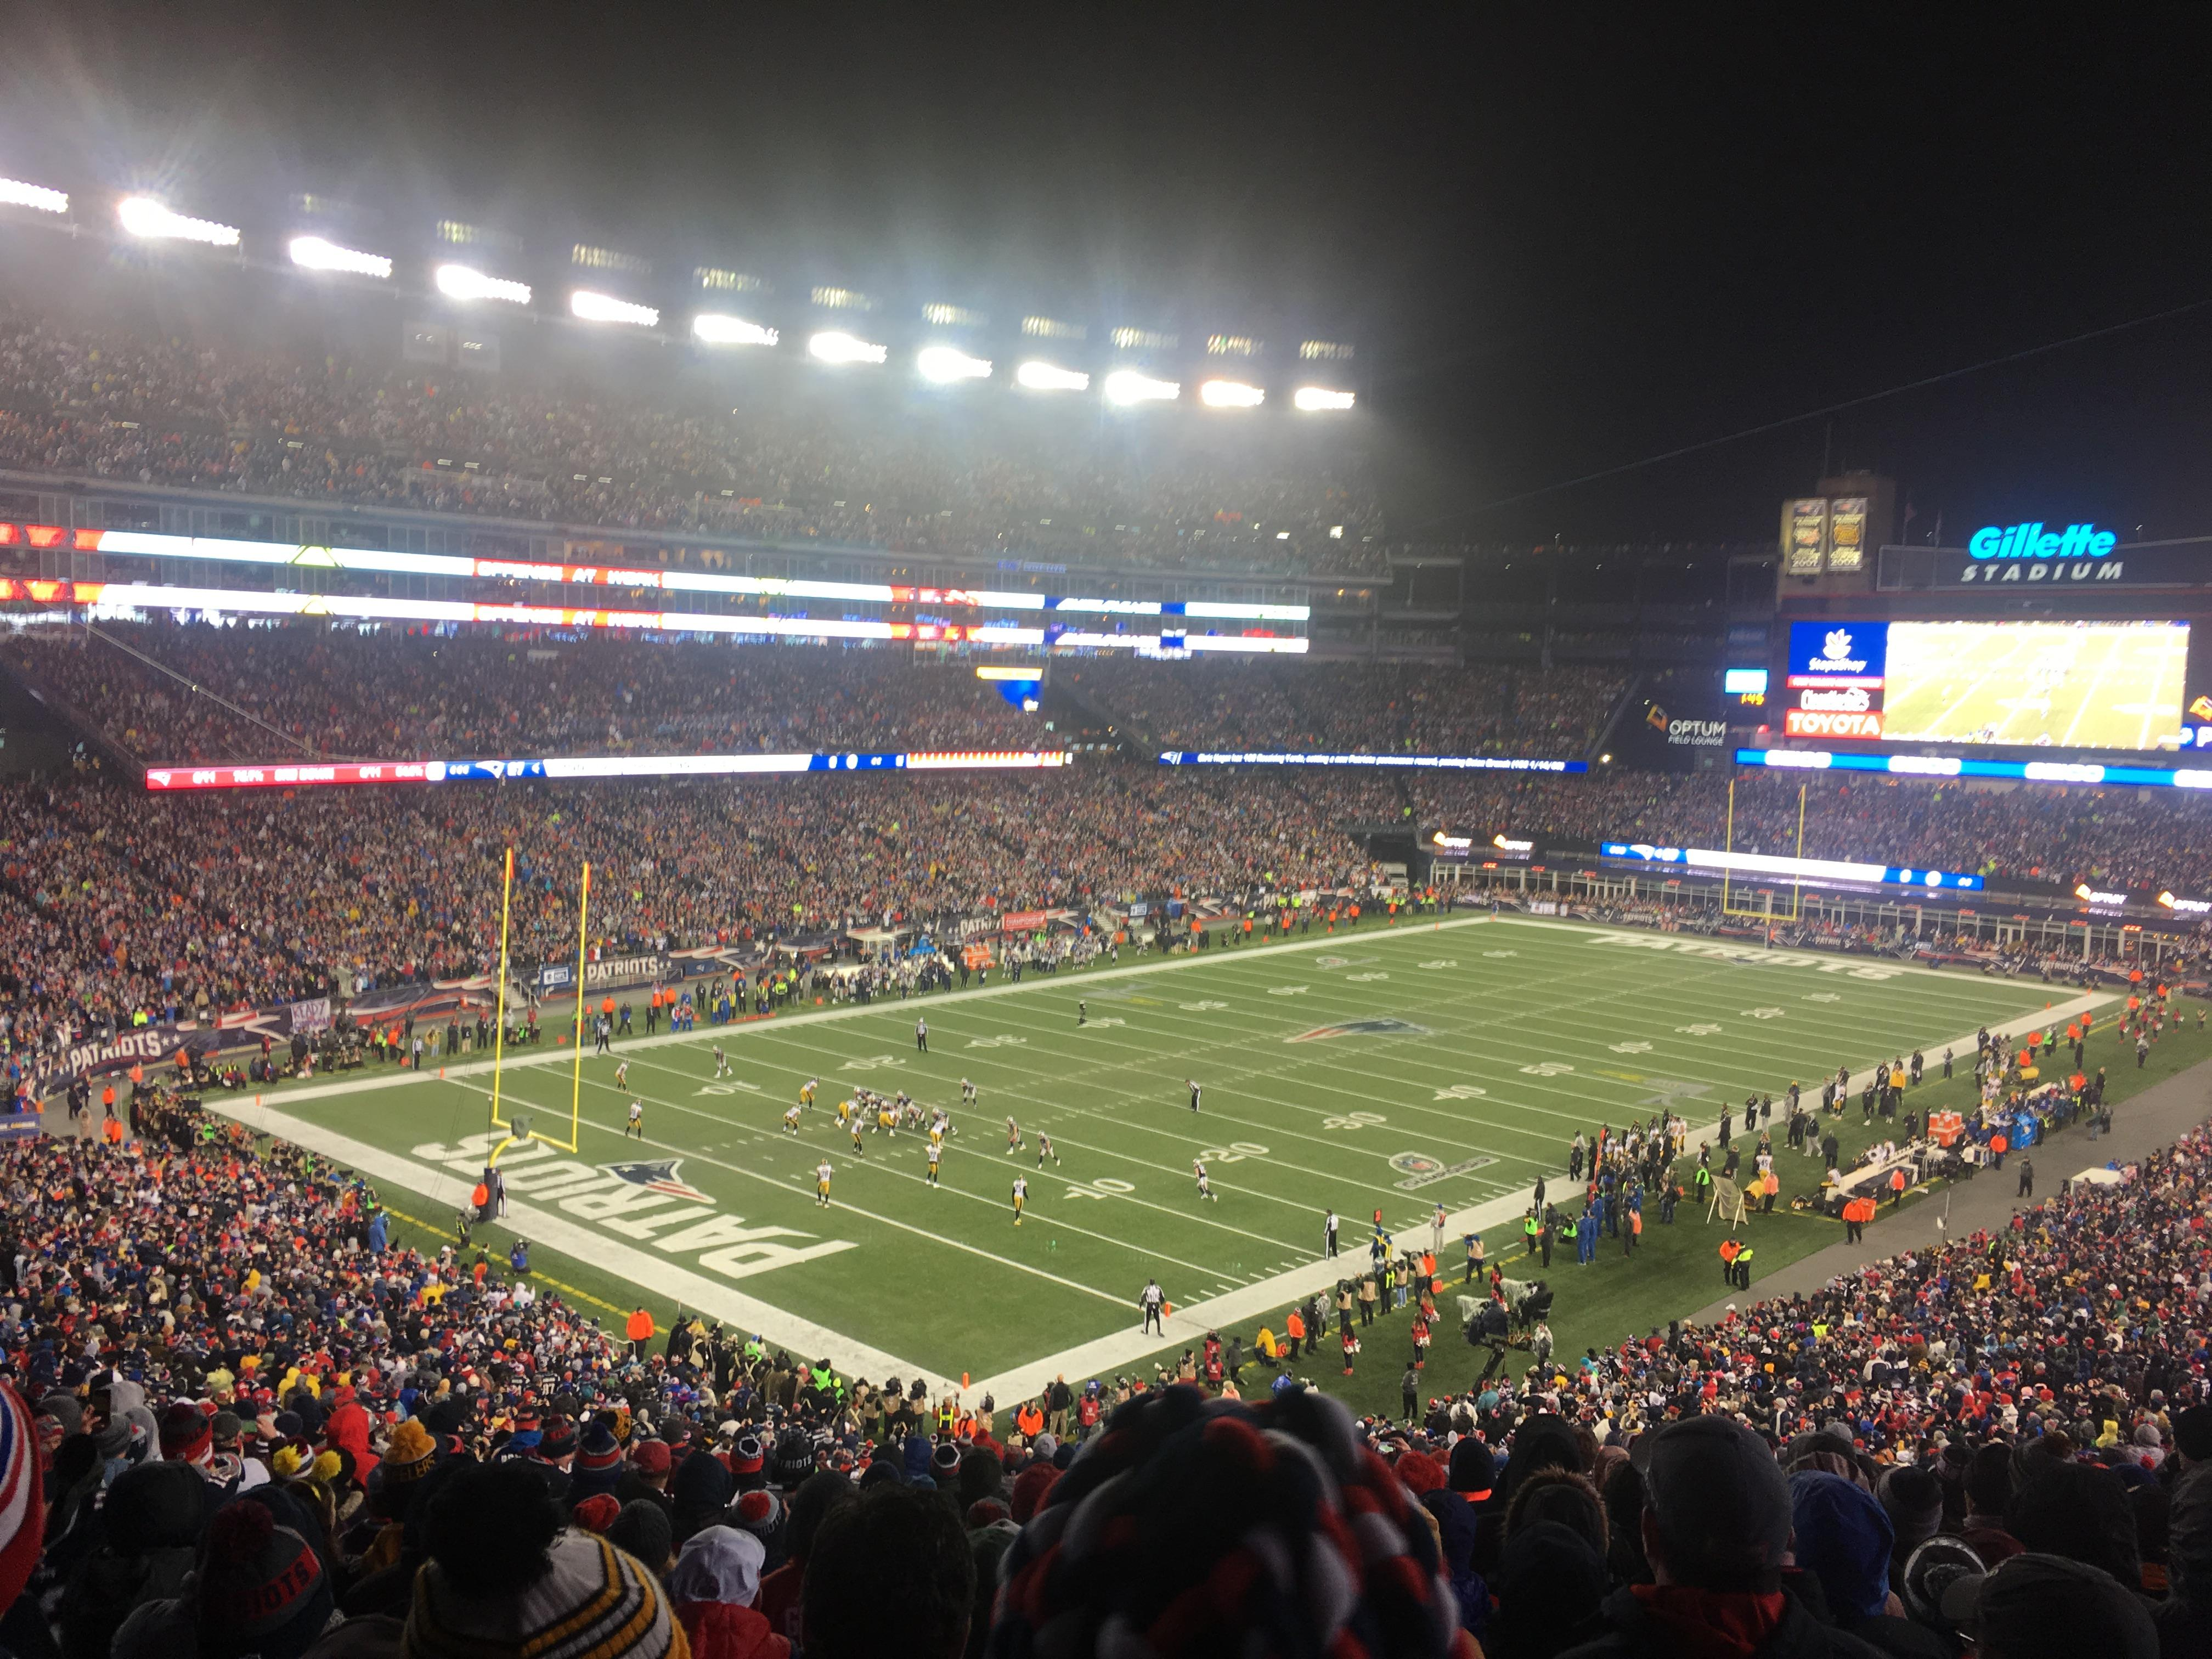 Gillette Stadium Section 238 Row 21 Seat 23